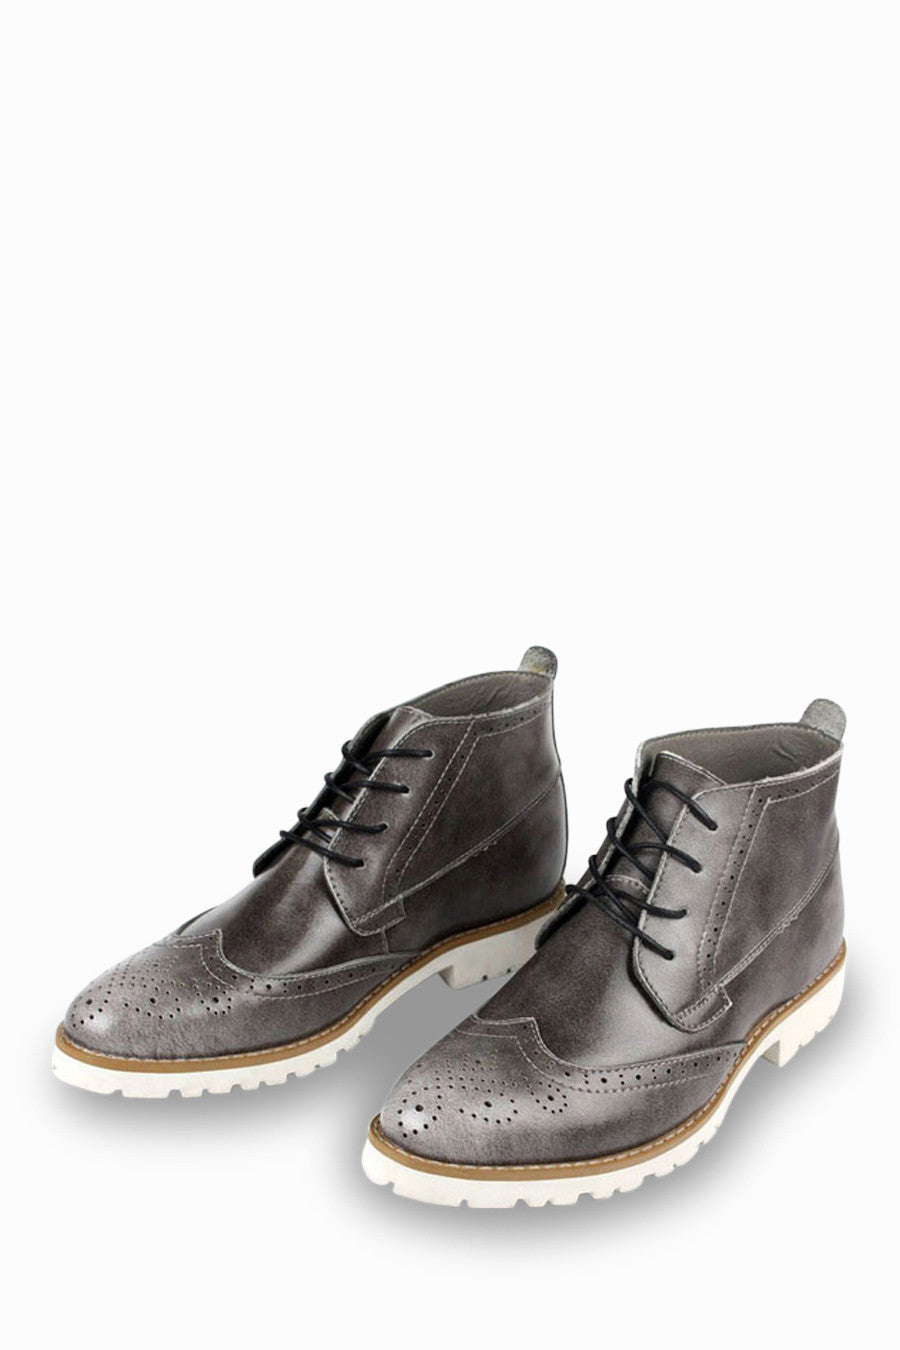 Brogue Oxford Boots In Gray